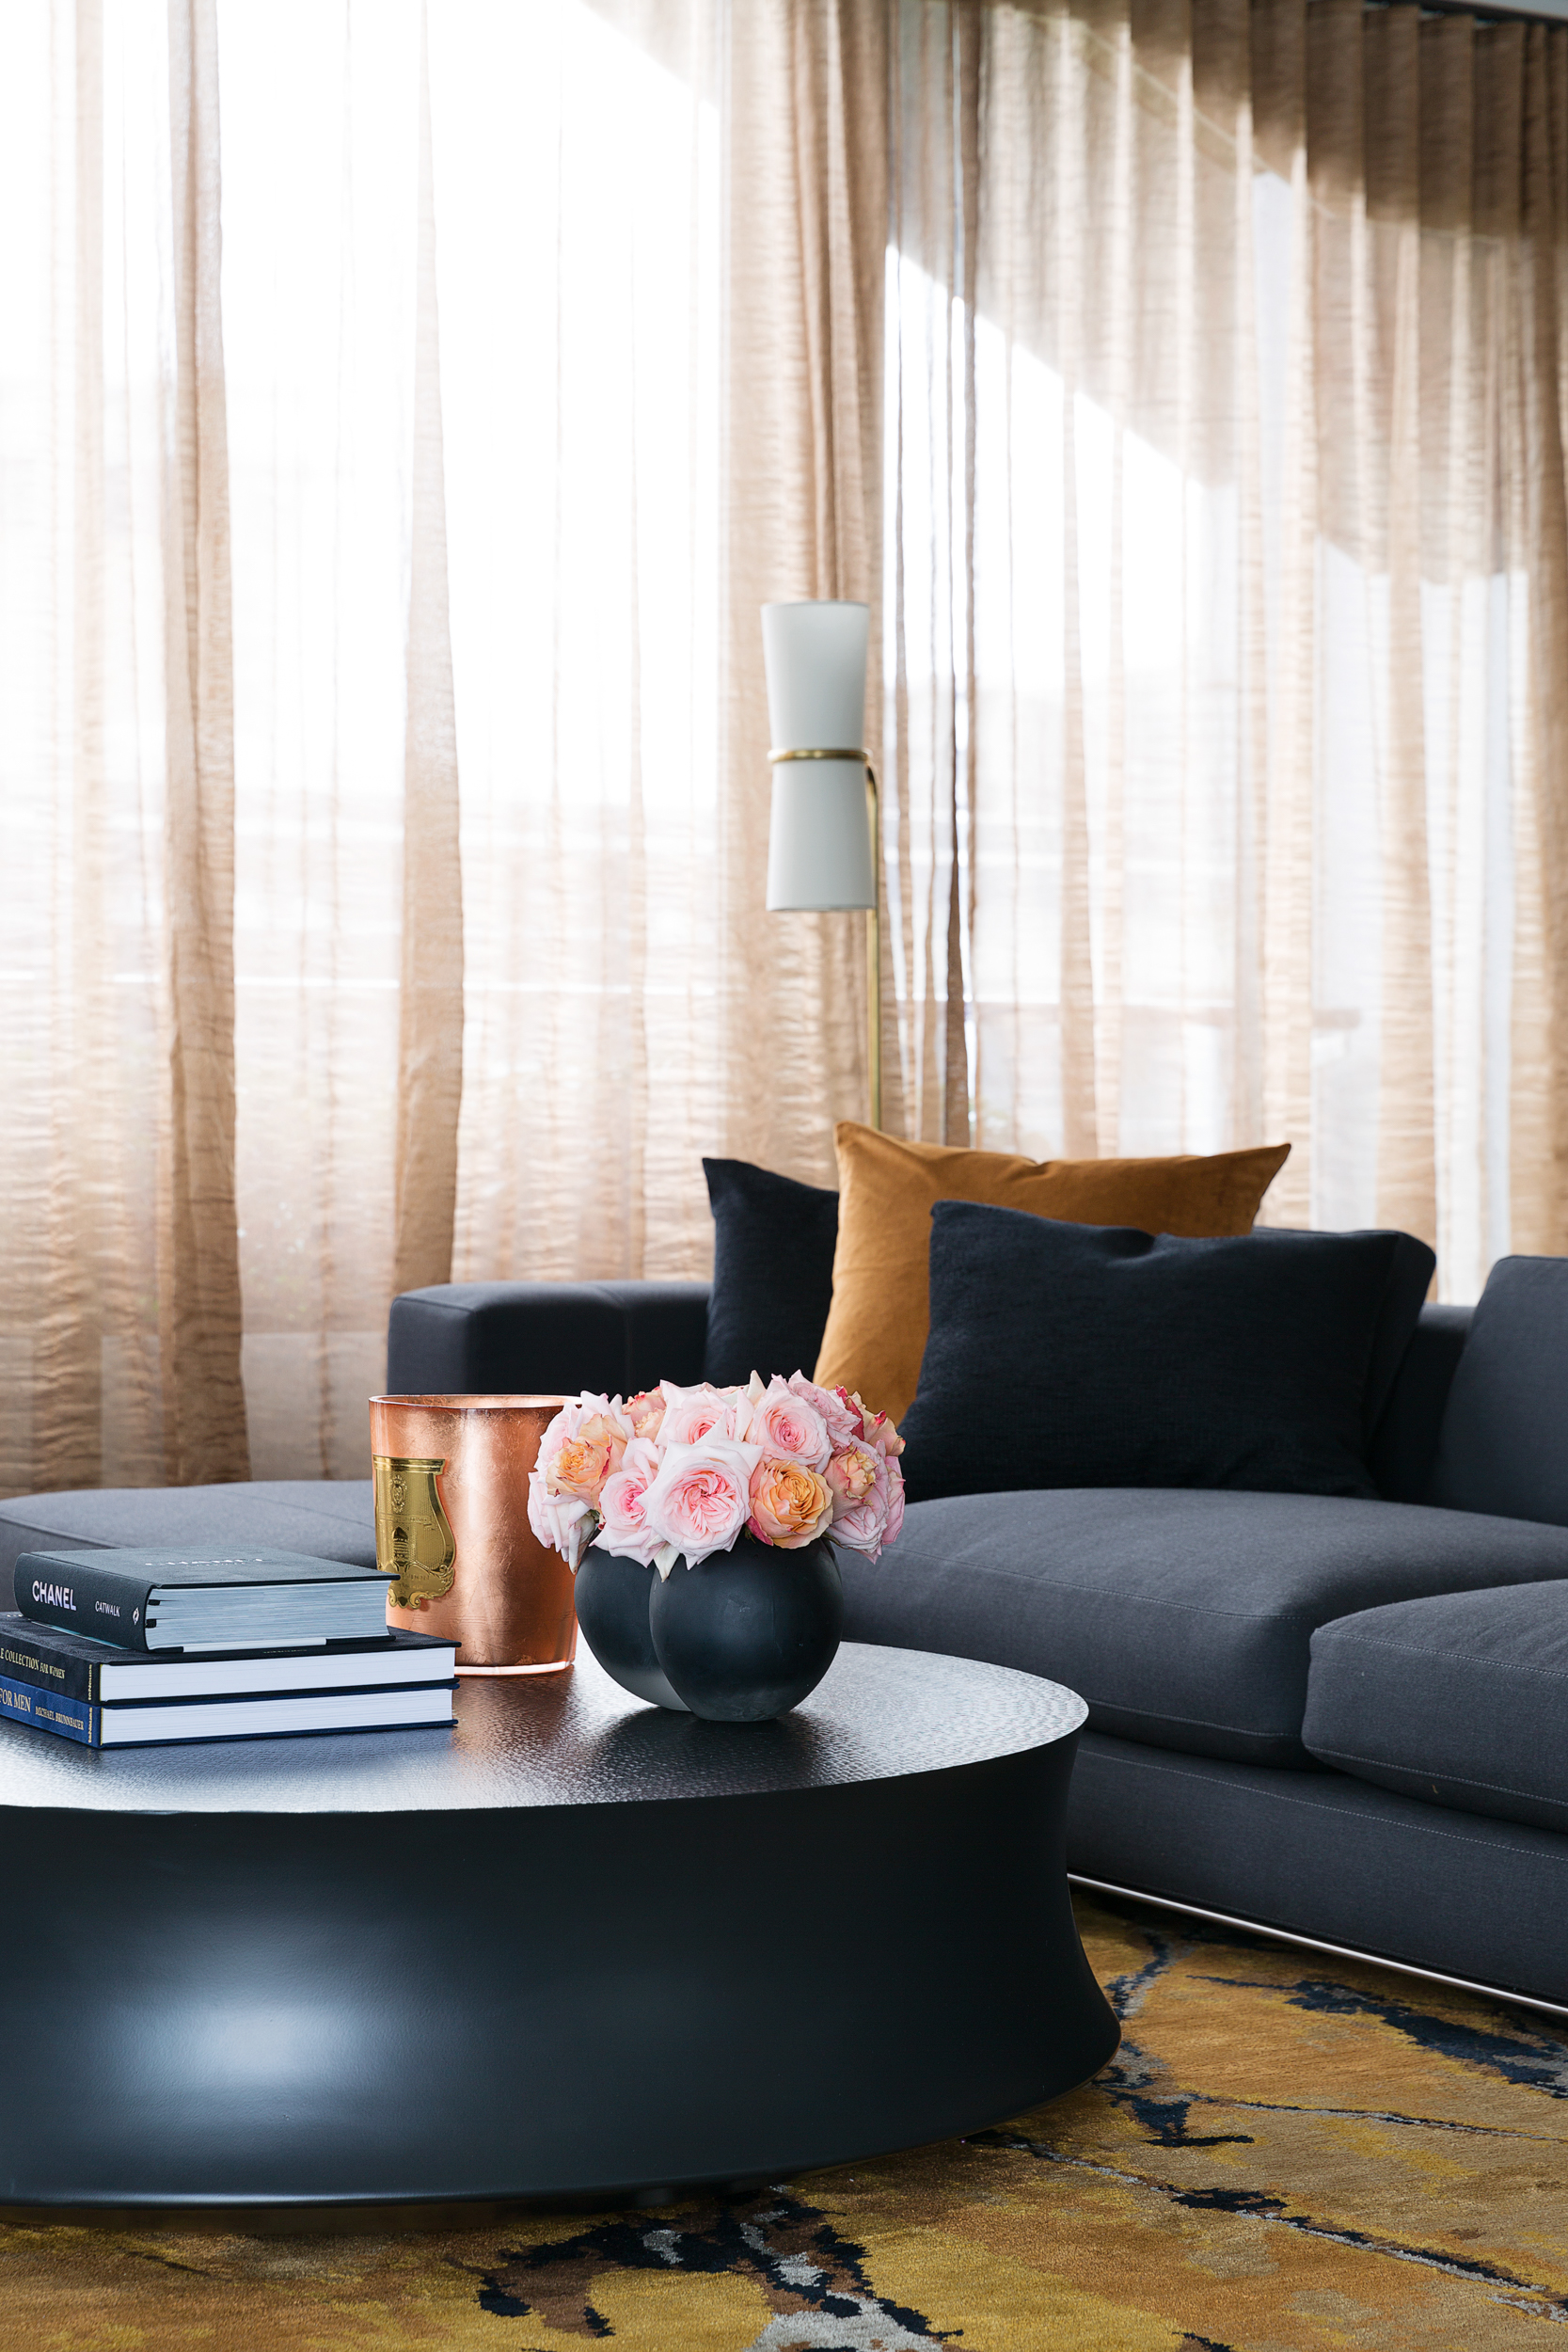 Wharf Crescent, photographed by Simon Whitbread and styled by Manyara Home